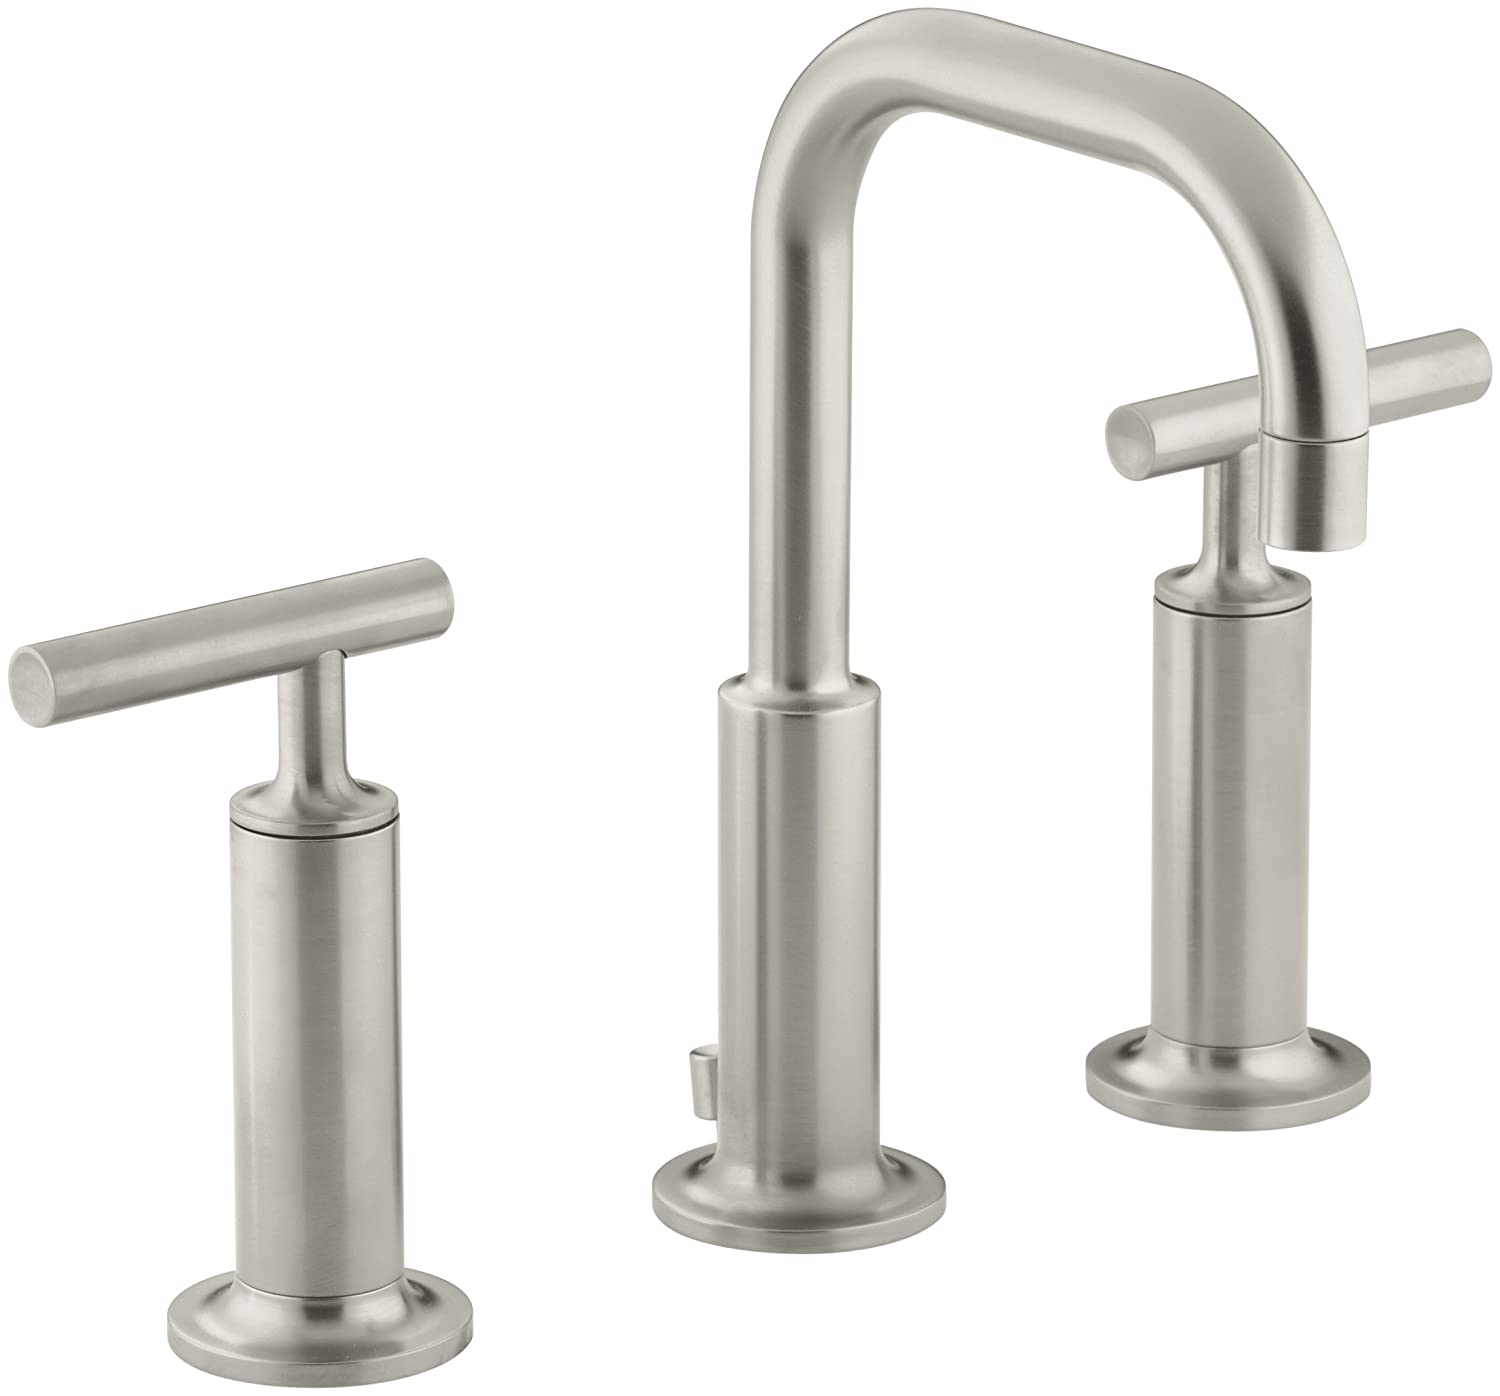 Kohler K 14407 4 Bn Purist Widespread Lavatory Faucet With